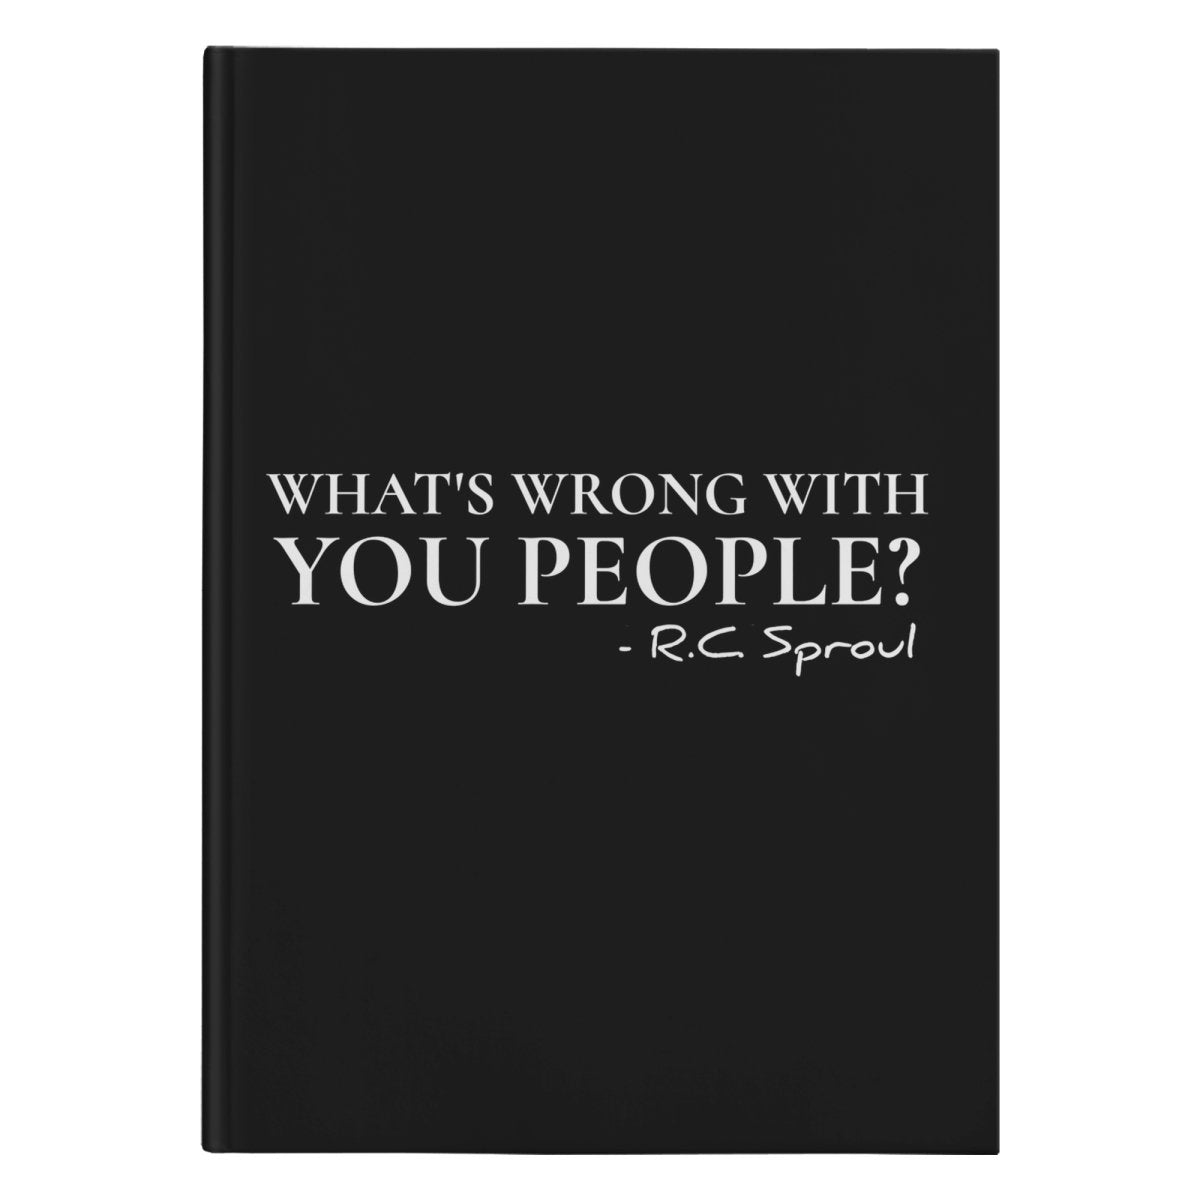 What's Wrong With You People?! (150 page Hardcover Journal) - SDG Clothing